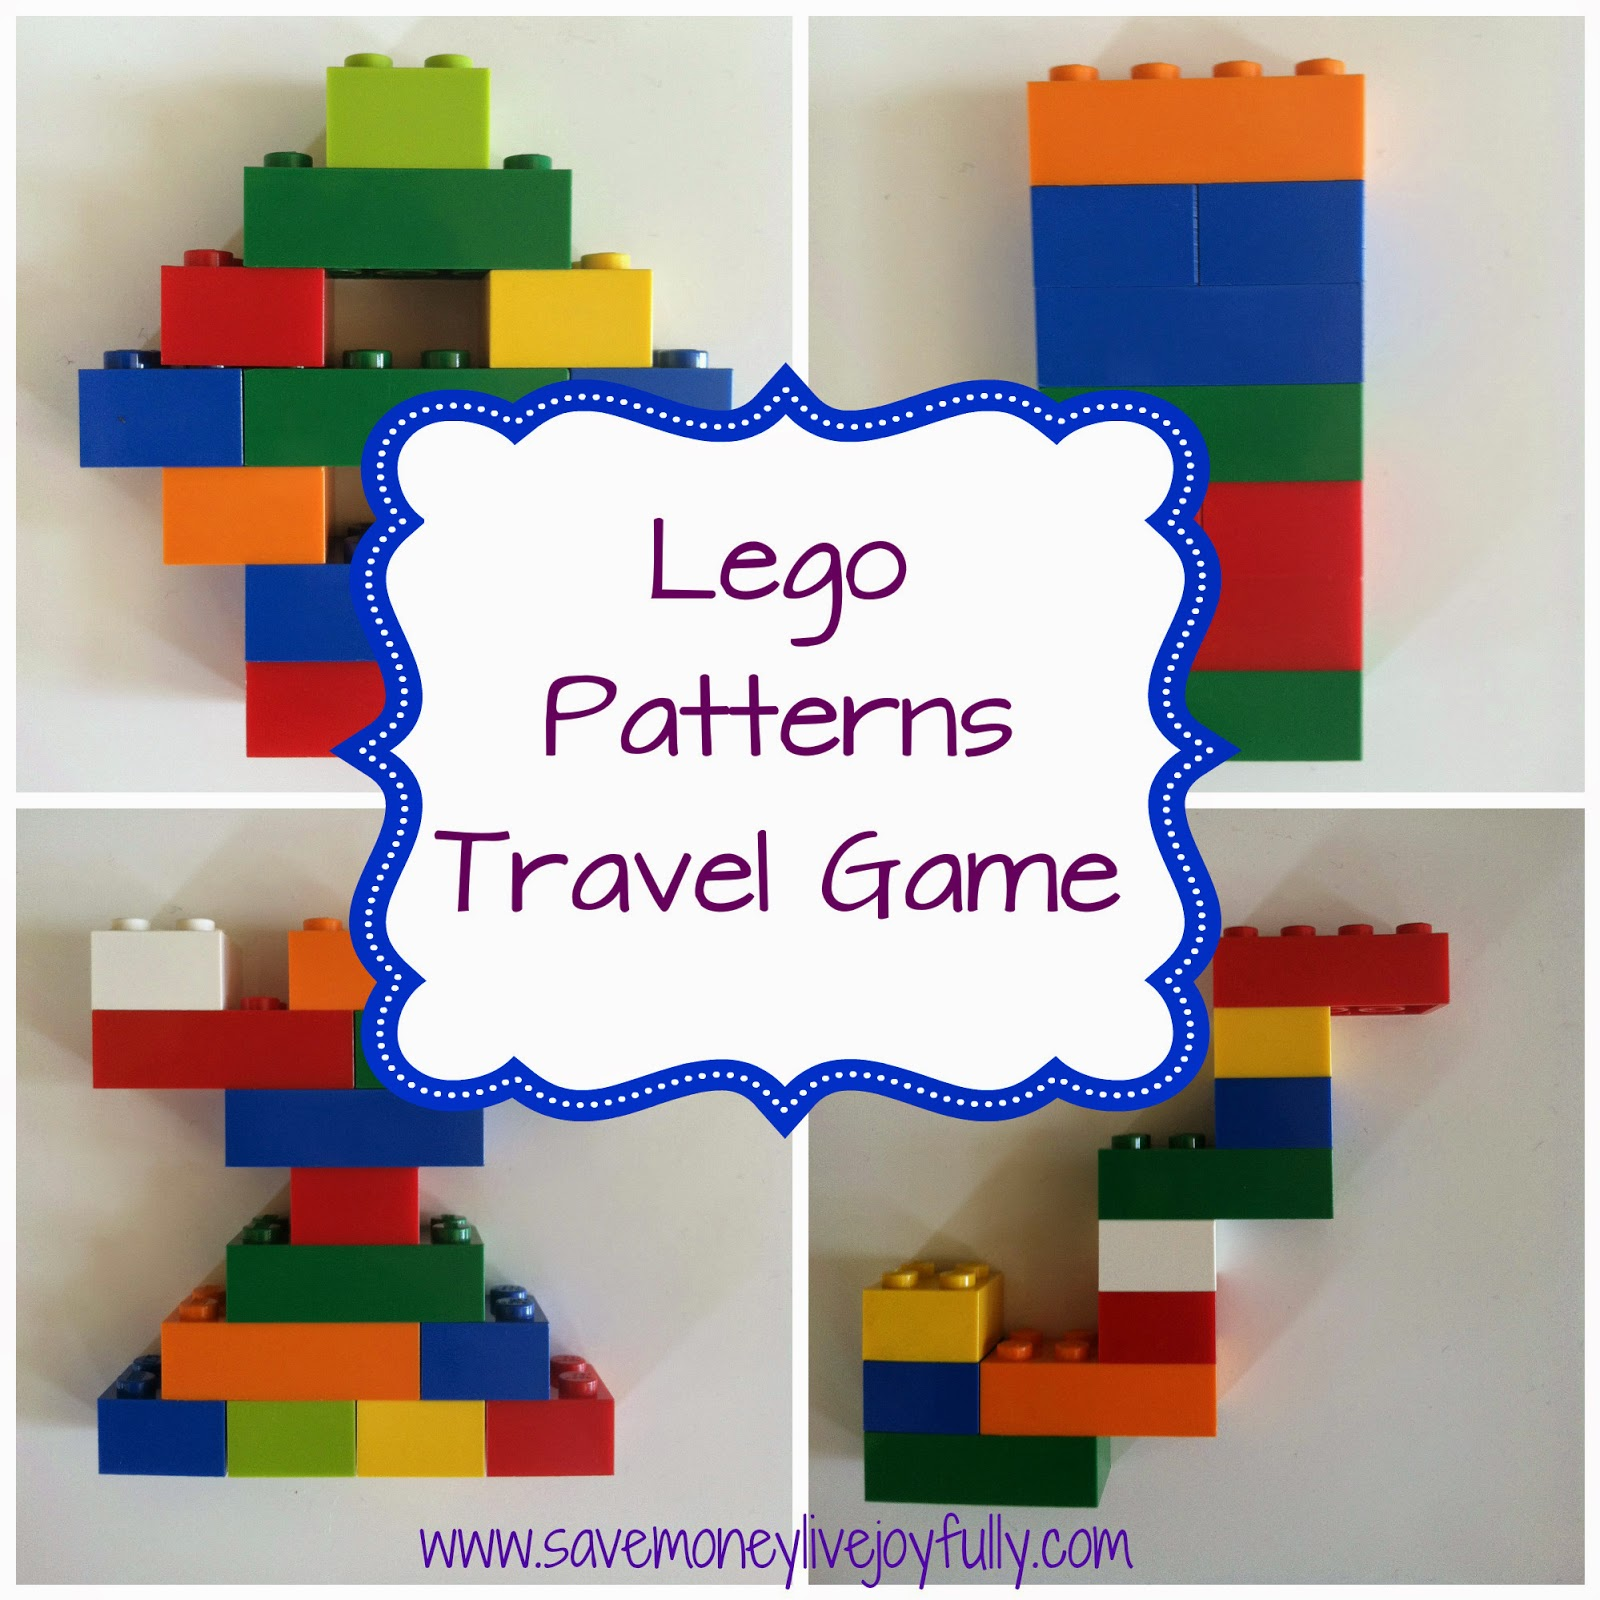 Save Money Live Joyfully Lego Patterns Travel Game Free Printables